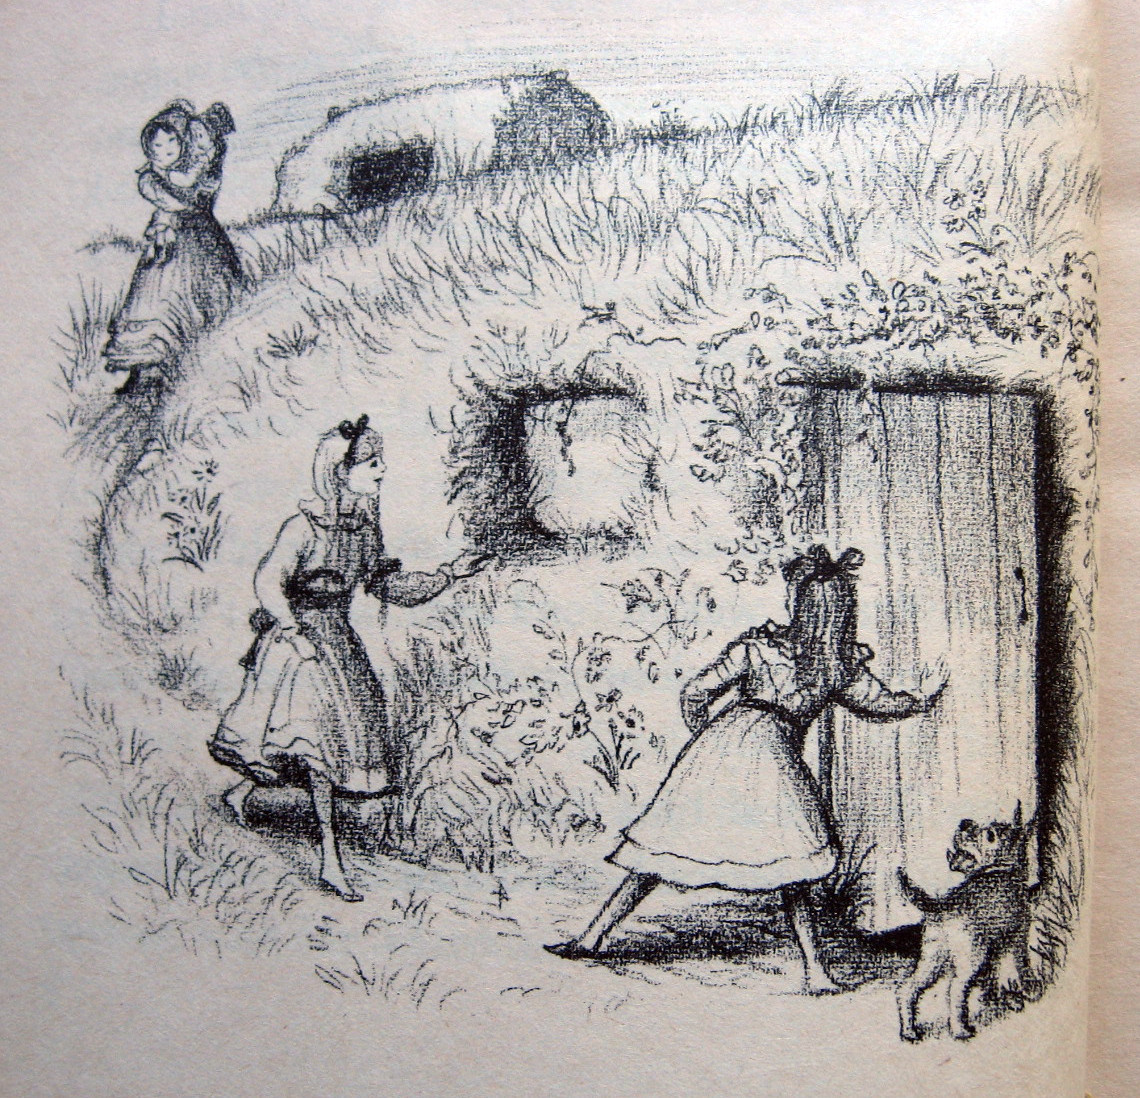 Why I've been sort of obsessed with sod houses since age 7.  Illustration by Garth Williams from On the Banks of Plum Creek by Laura Ingalls Wilder.